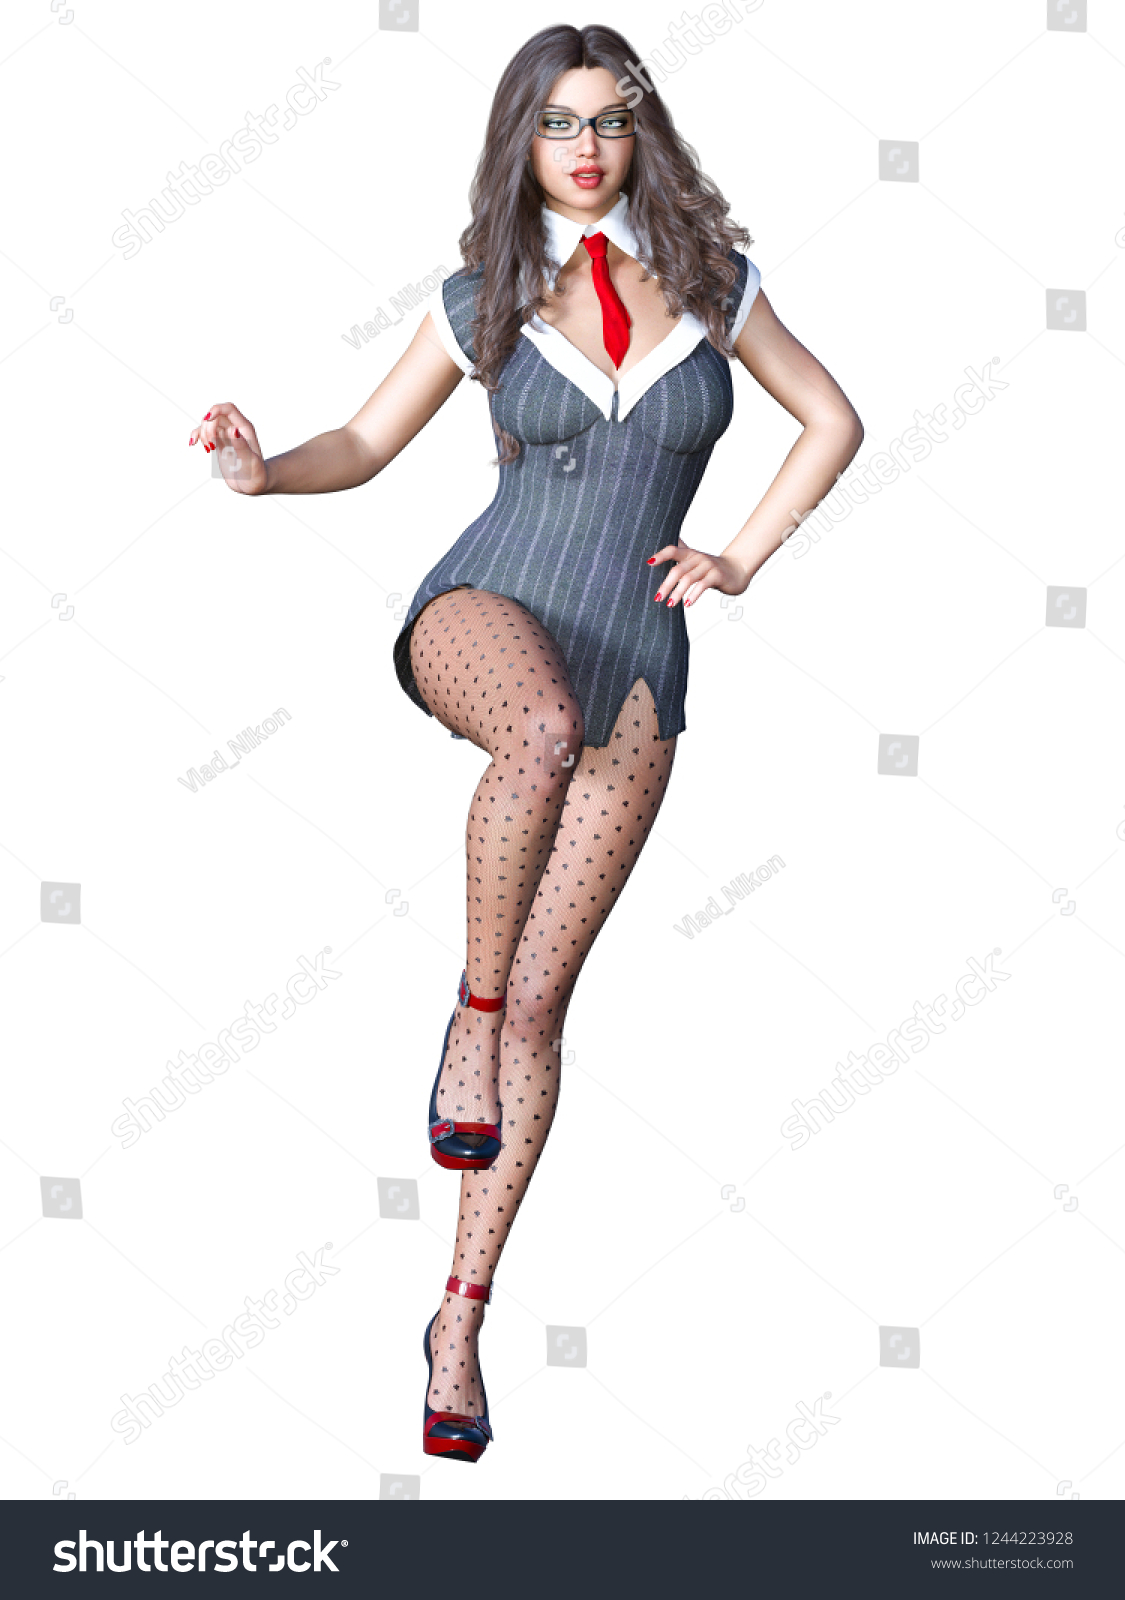 366aa9148406 Stock photo long haired sexy brunette secretary in black pantyhose  beautiful girl with glasses standing jpg